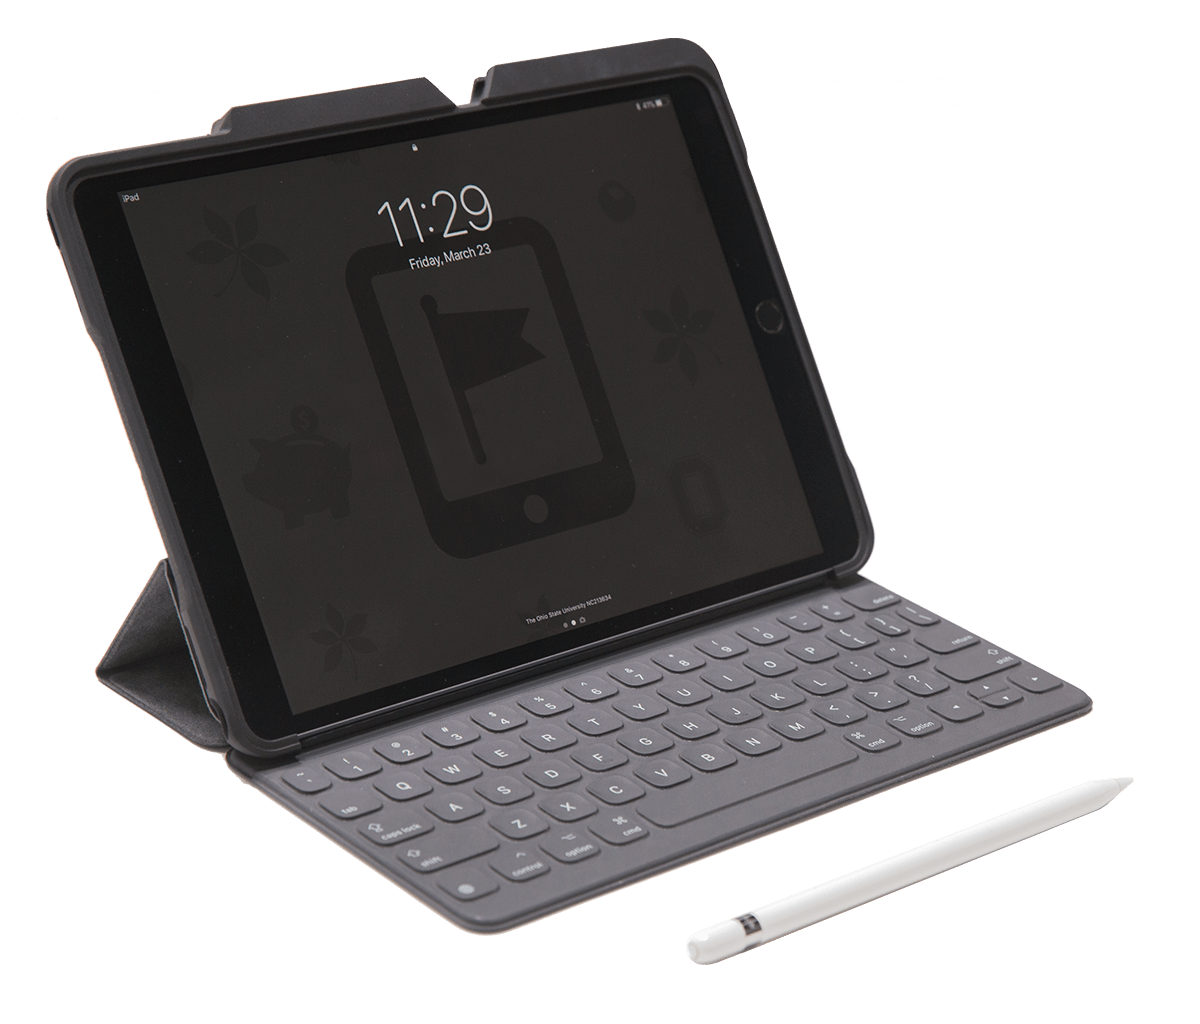 iPad Pro with a keyboard, case, and Apple Pencil.